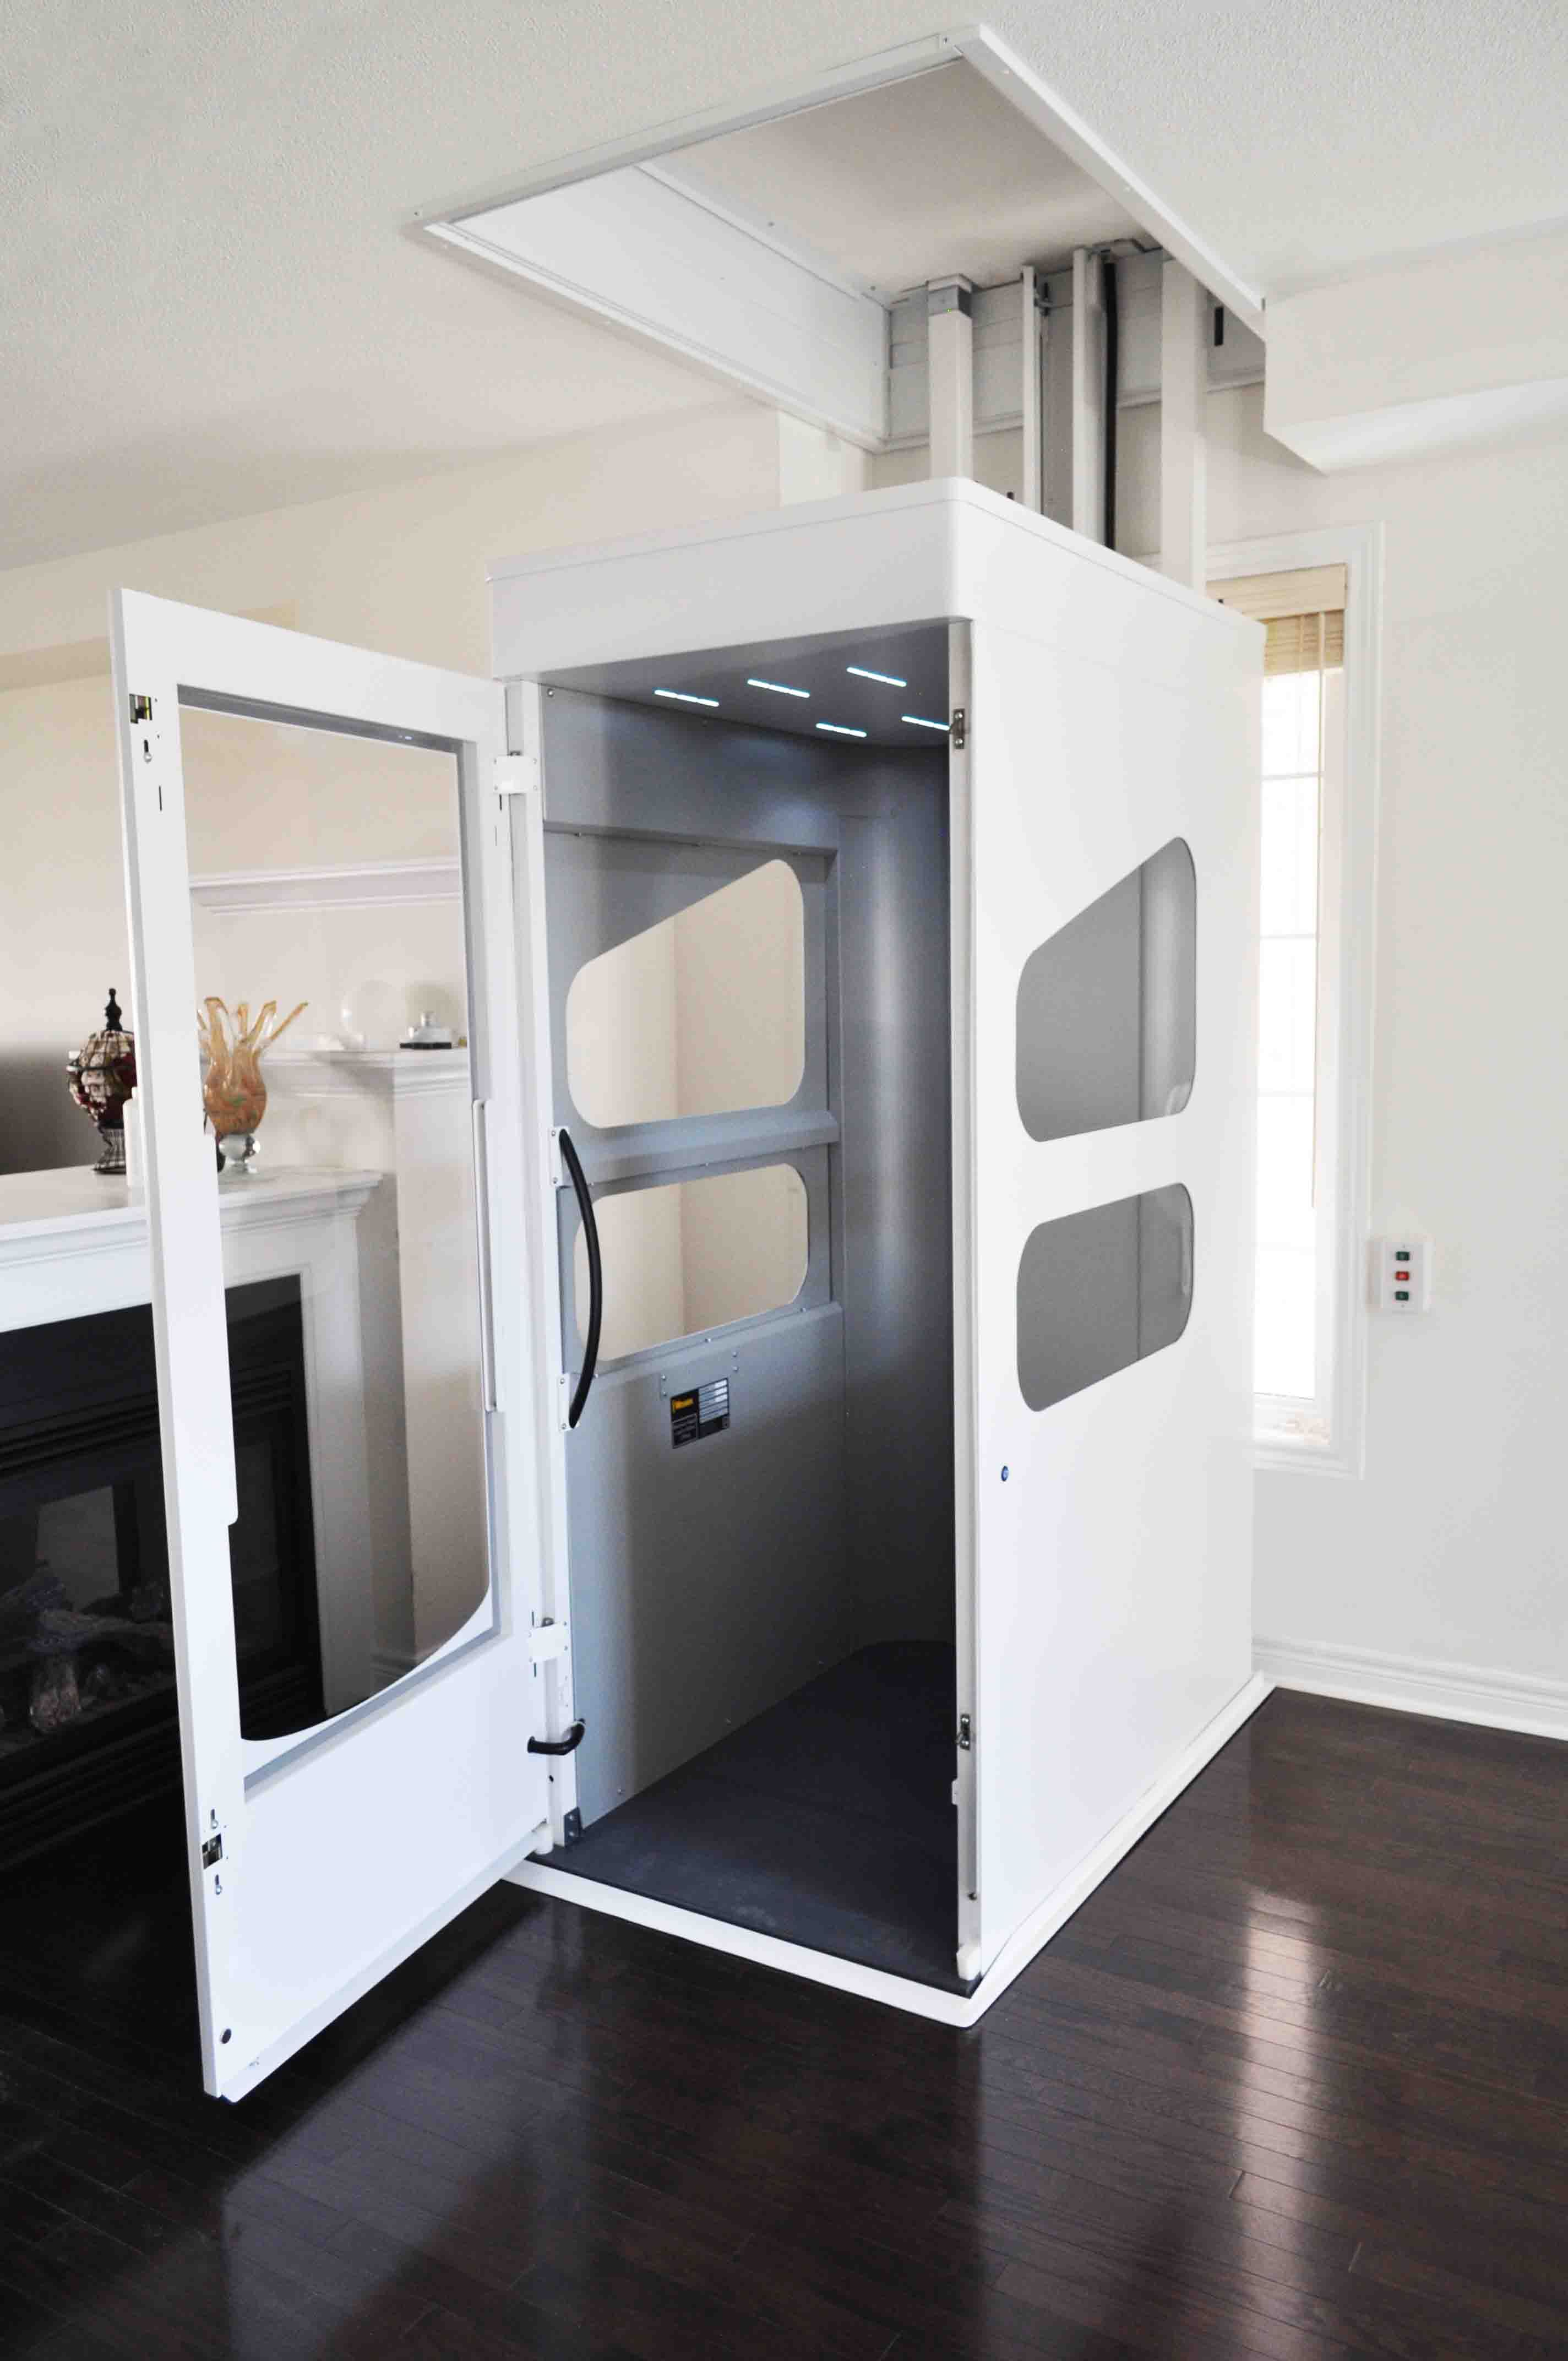 VE Enclosed Home Elevator The ThroughFloor Range in